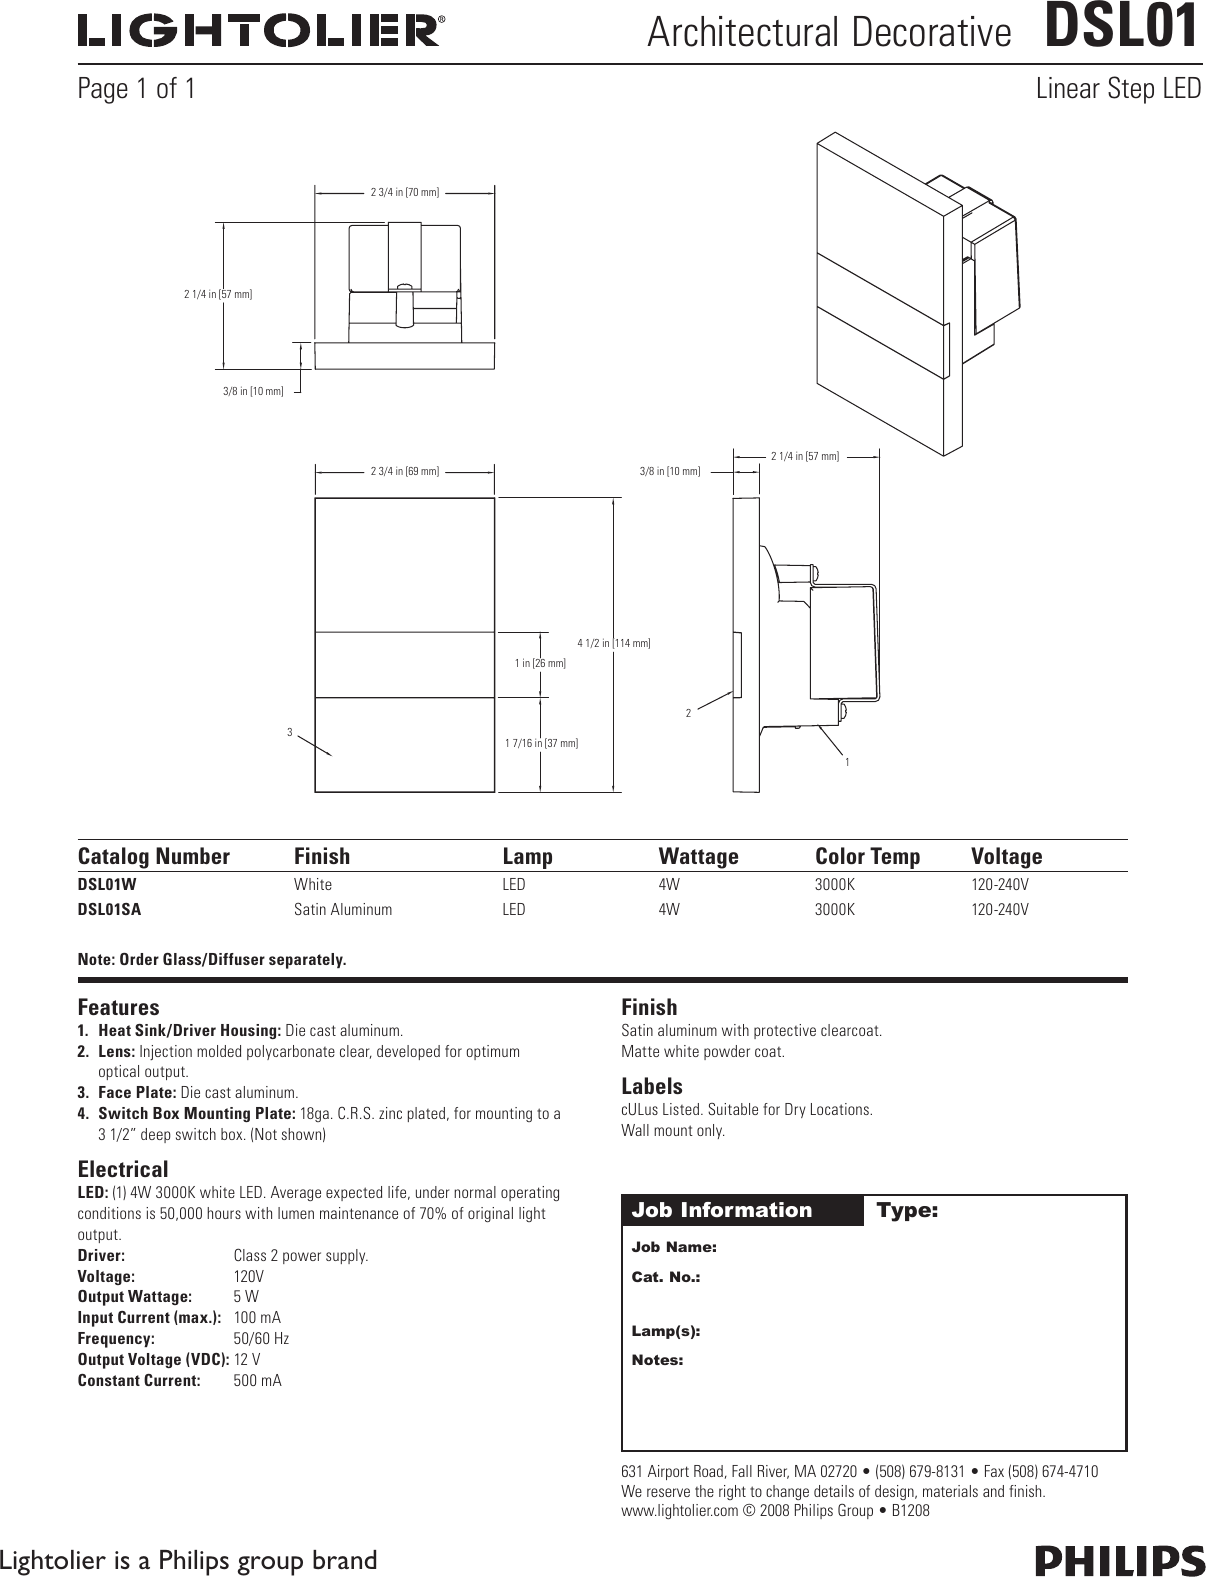 Lightolier Architectural Decorative Dsl01 Users Manual